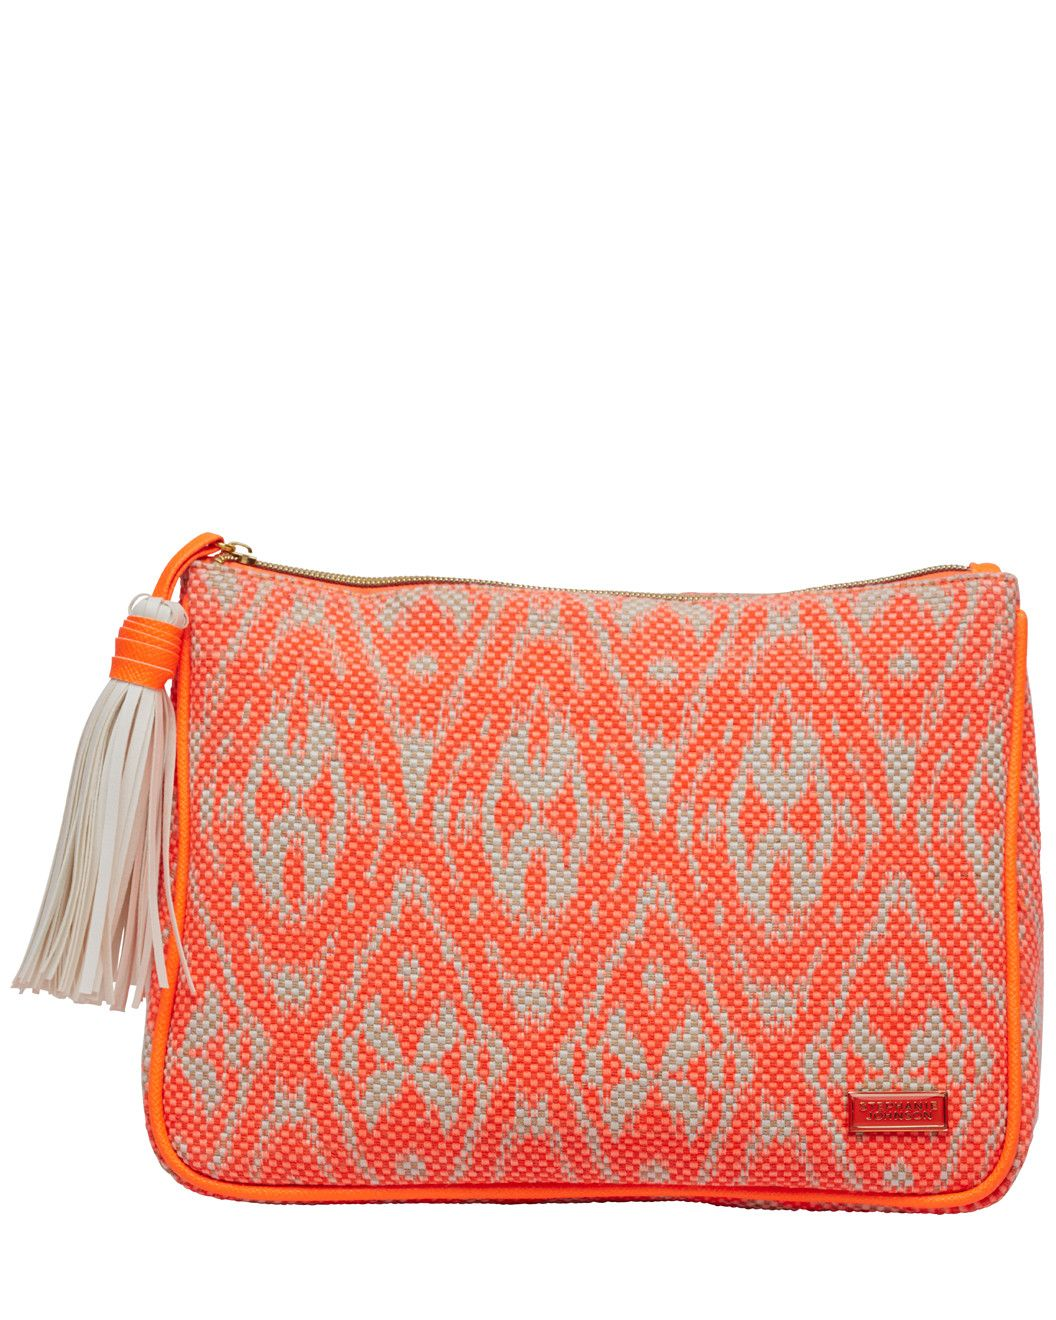 Spotted this Stephanie Johnson Women's Tamarindo Cosmetic